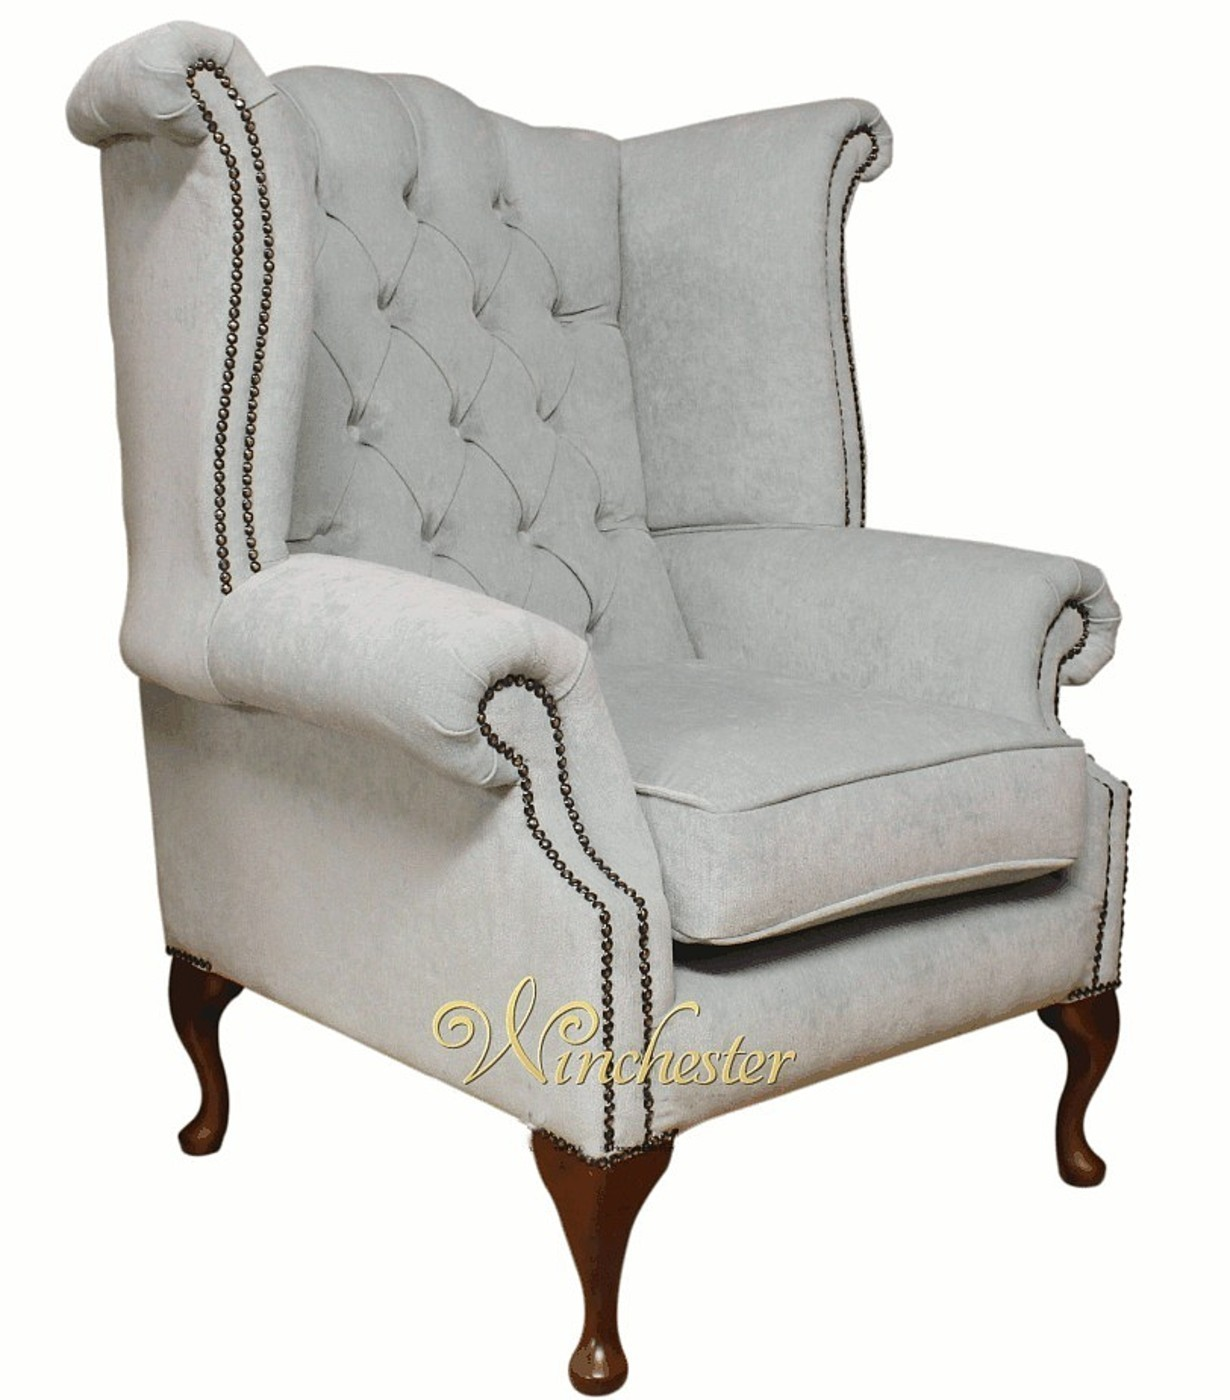 2 seater chesterfield sofa dimensions clubber fabric queen anne high back wing chair duck ...